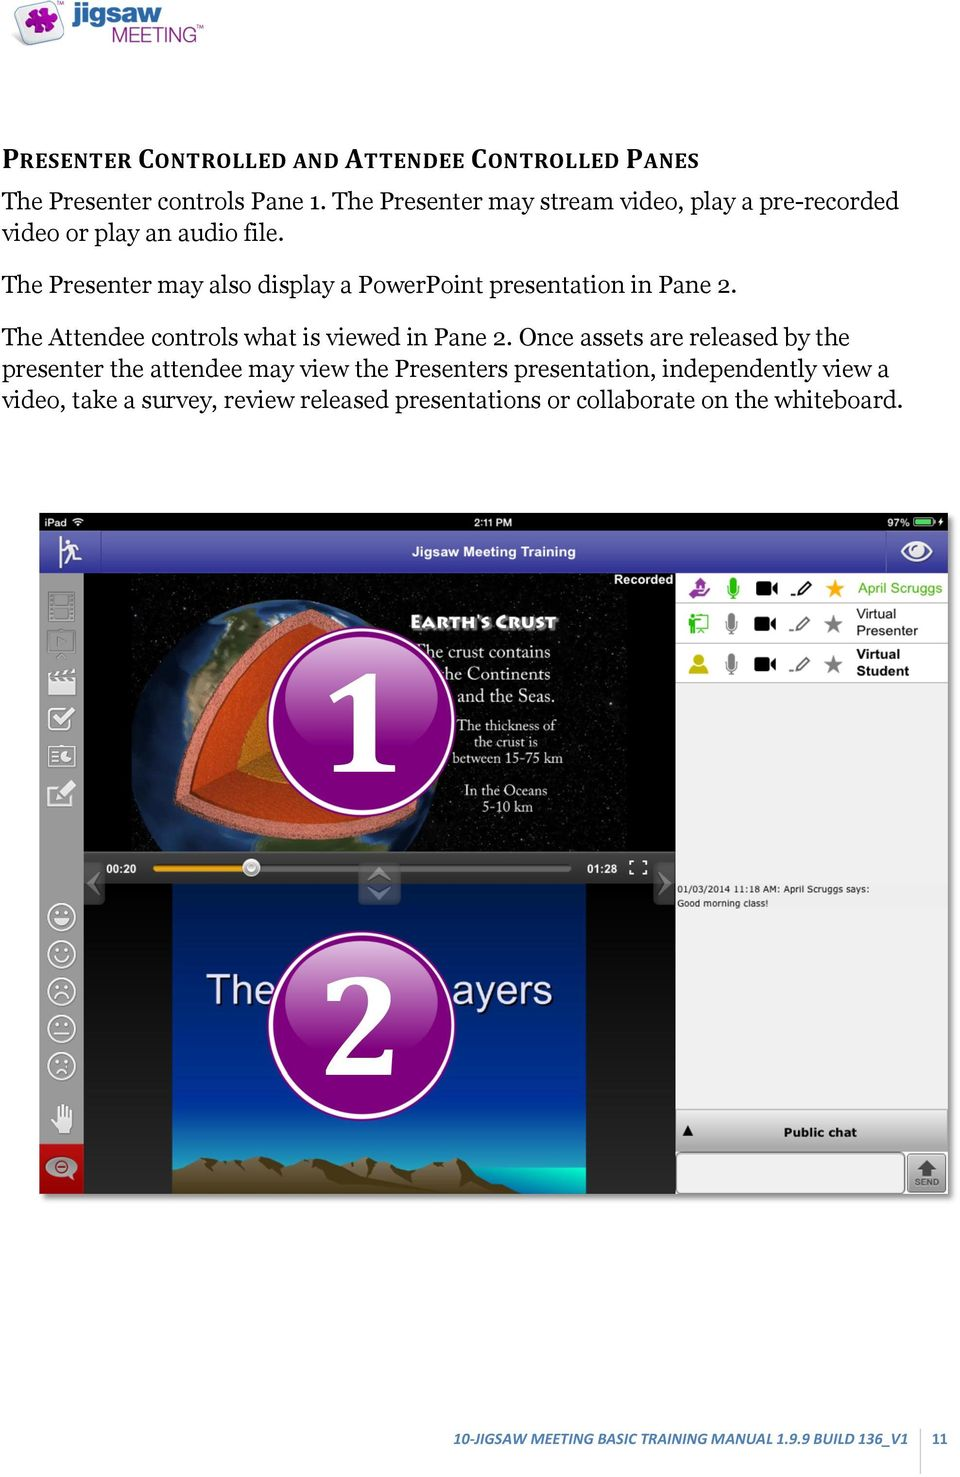 The Presenter may also display a PowerPoint presentation in Pane 2. The Attendee controls what is viewed in Pane 2.